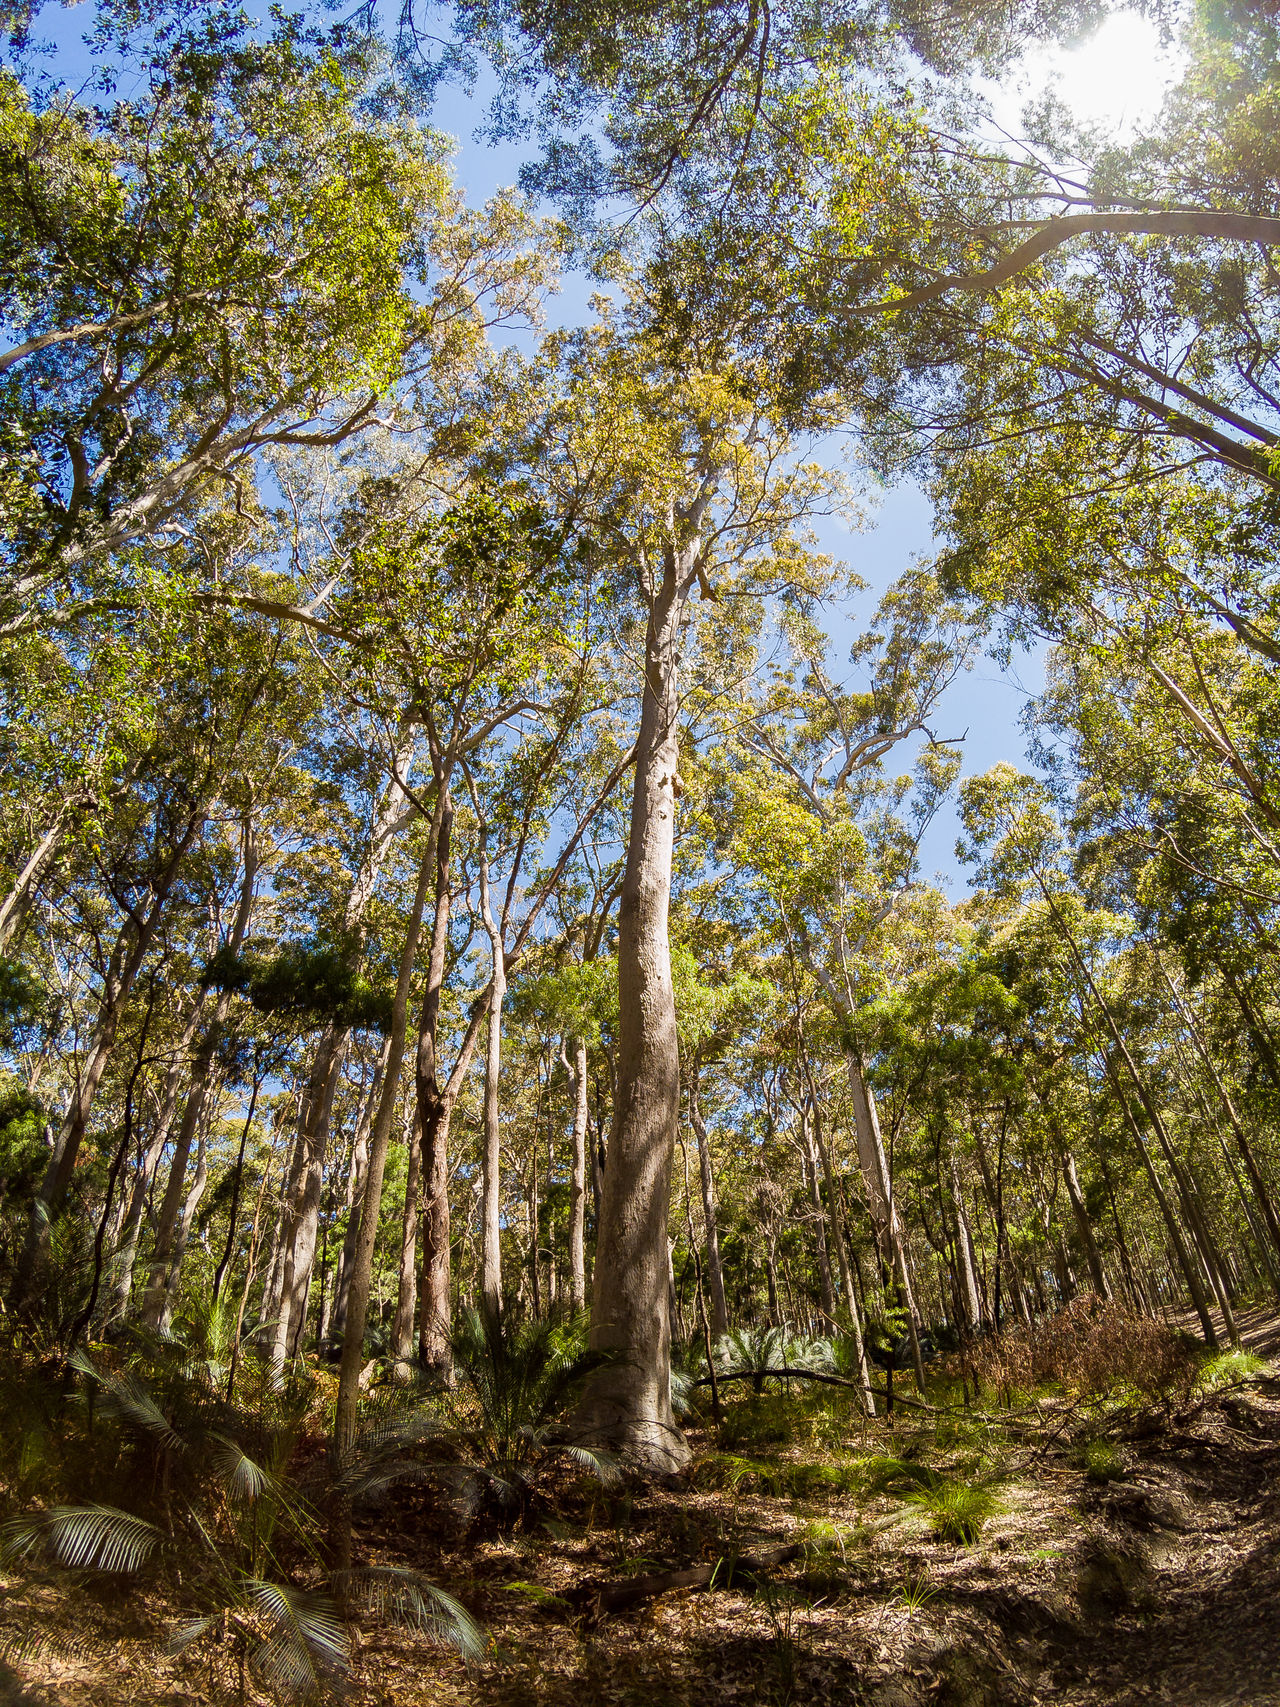 Wide-angle / low angle view of Australian bush / forest along the south-eastern coastline. Australia Australian Bush Australian Landscape Beauty In Nature Day Forest Growth Landscapes Low Angle View Nature No People Outdoors Tranquility Tree